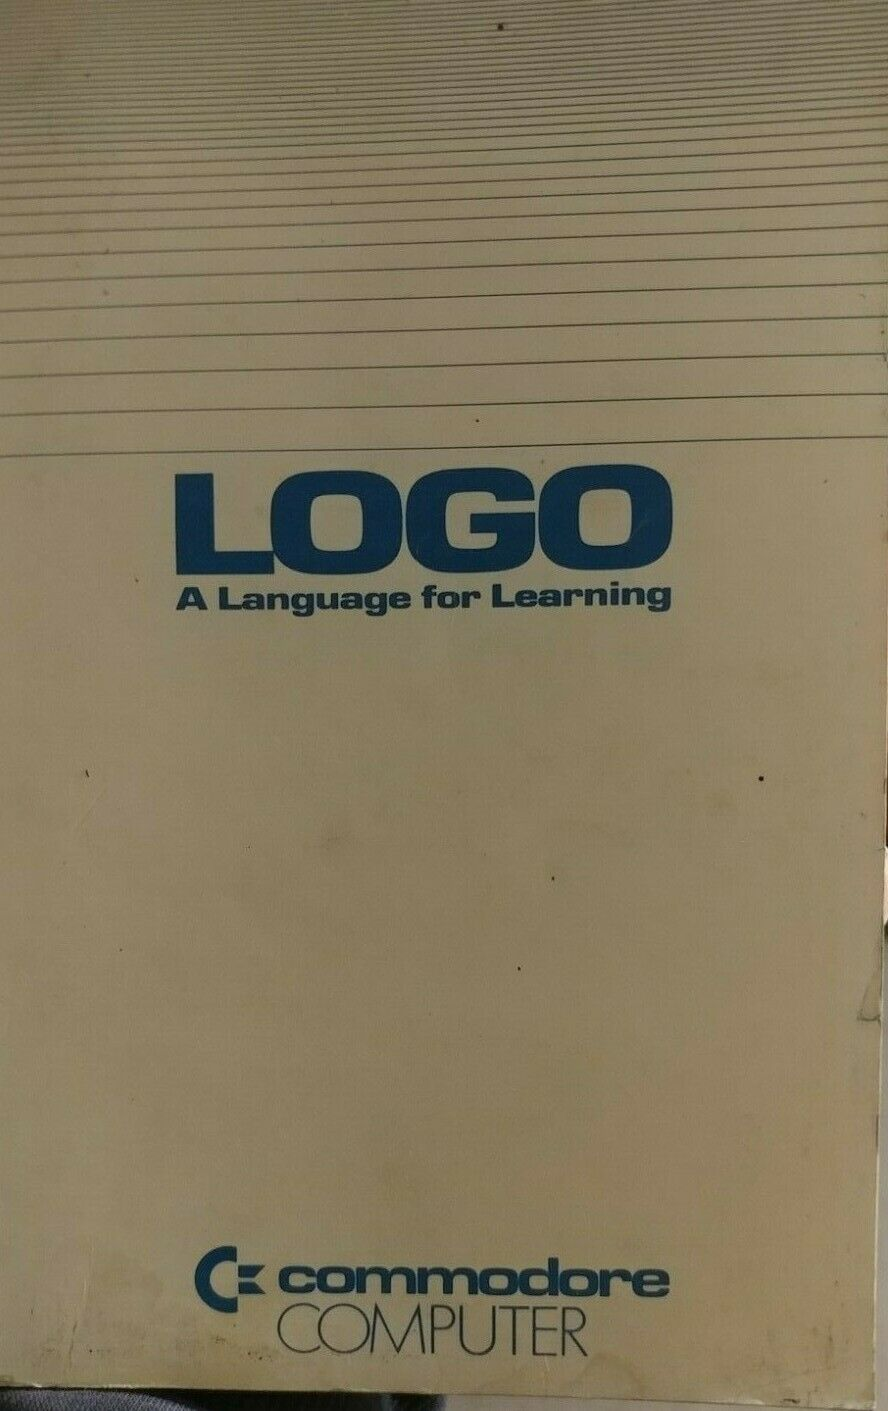 Commodore LOGO a Language for Learning Tutorial (Terapin 1983 Buch) ENGLISH - Commodore